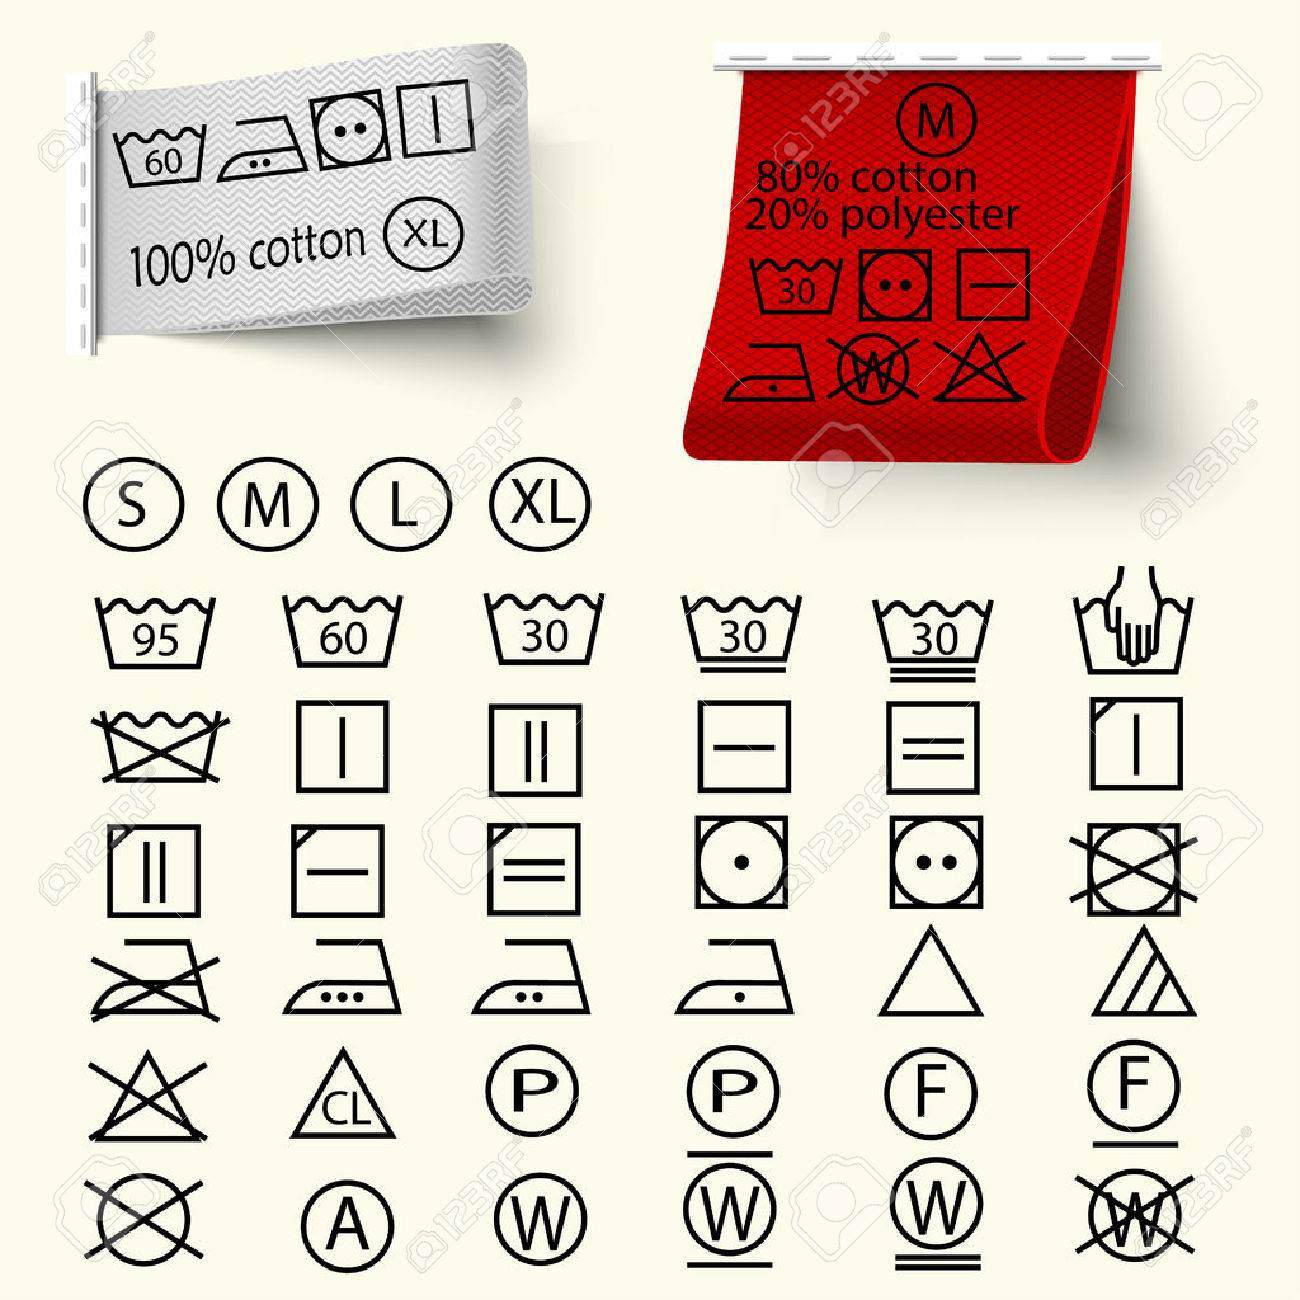 123796 clothing label stock vector illustration and royalty free set of textile care sign laundry care icons thin line design textile labels buycottarizona Gallery